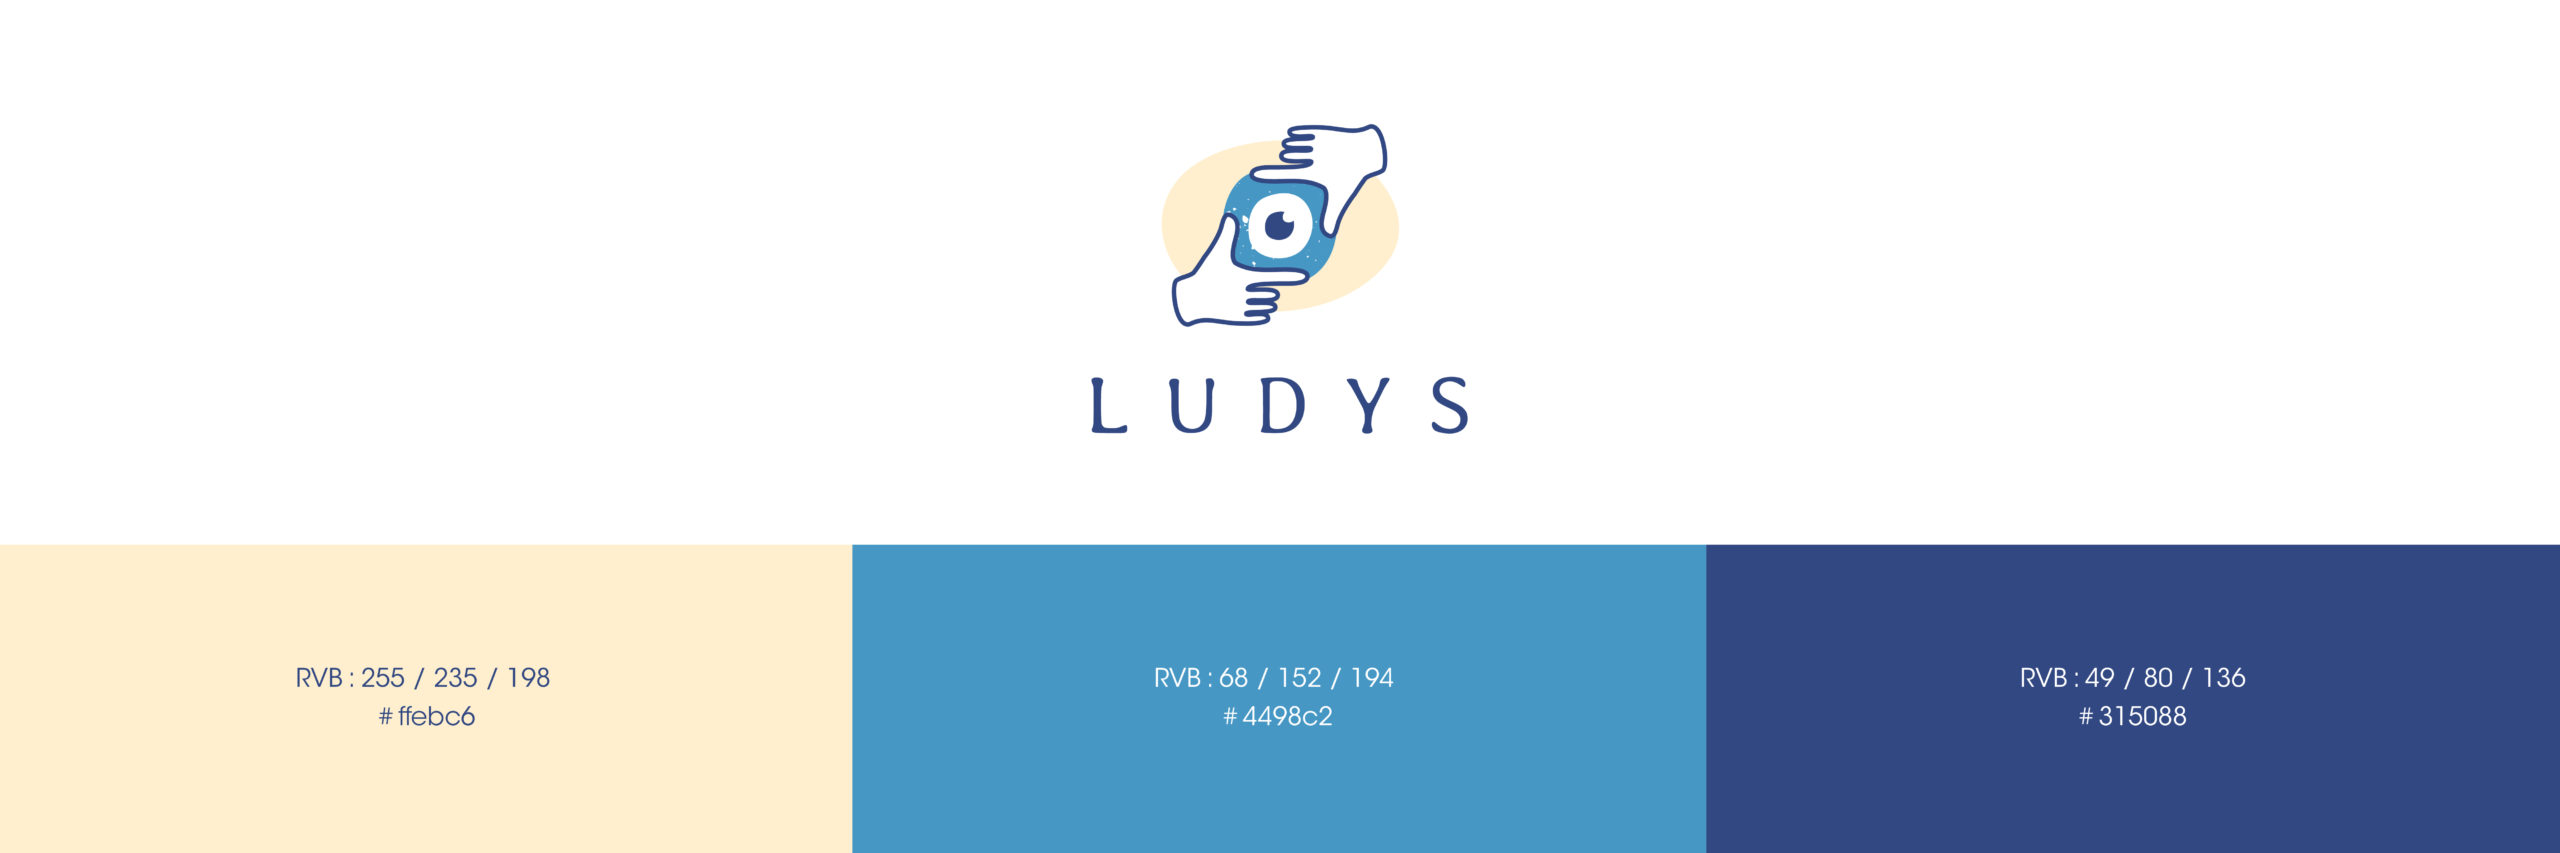 Ludys_couleurs-scaled Ludys